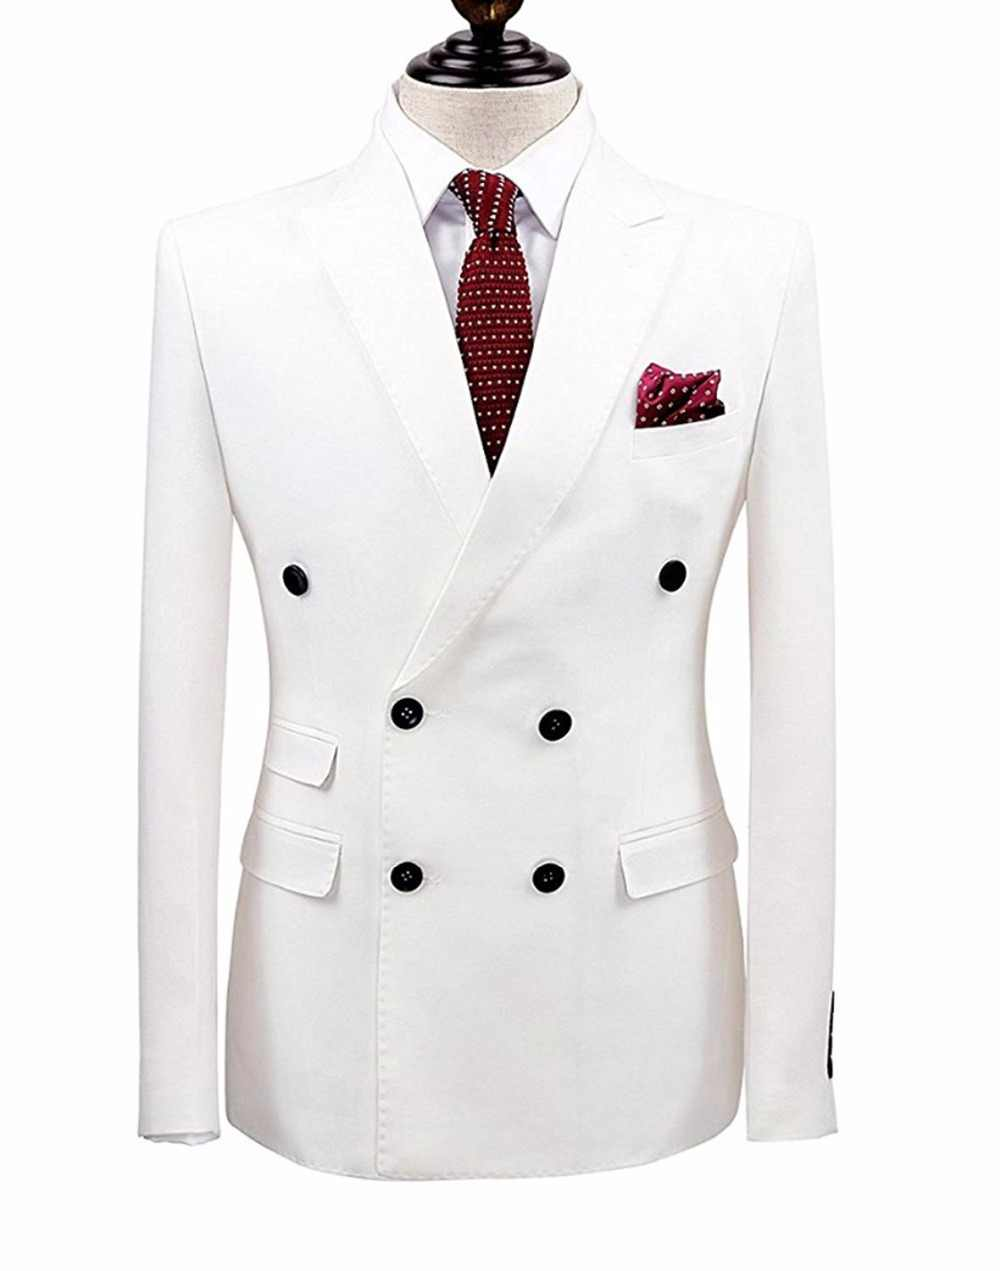 White 2 Pieces Men Suits Double Breasted Groom Terno Masculino Smoking Slim Fit Men Wedding Suits Blazer Tuxedo Jacket+Pants